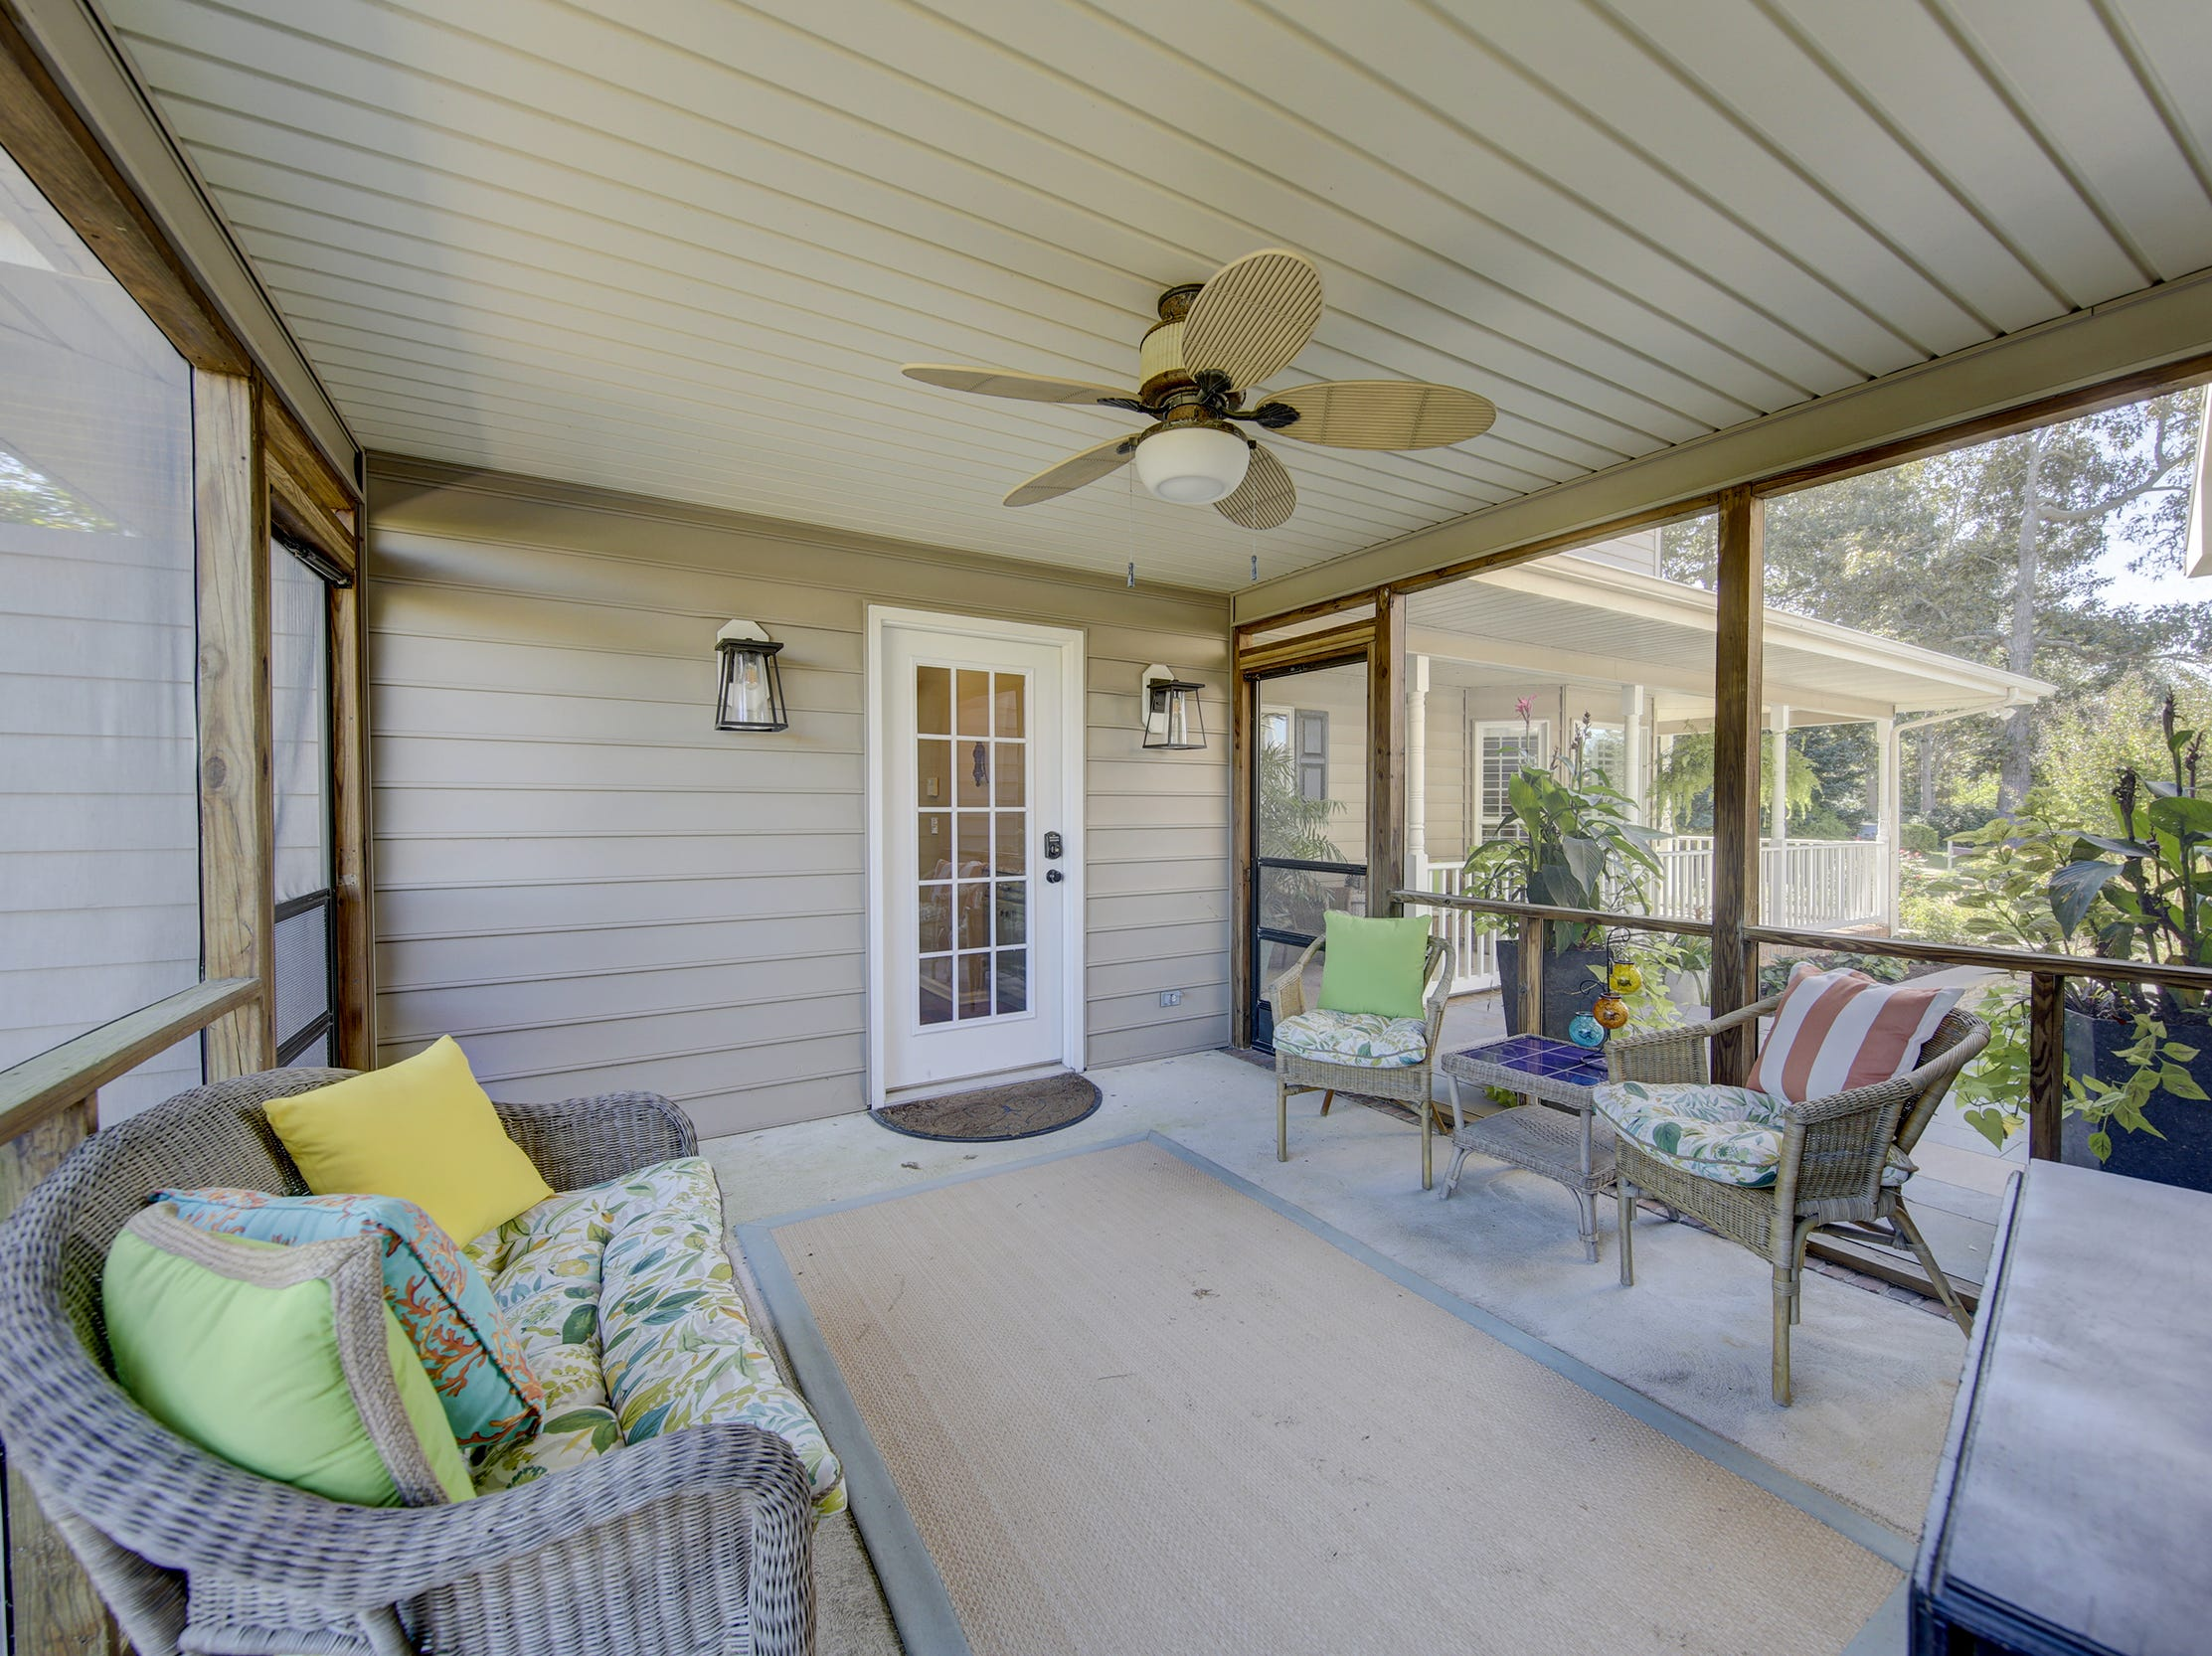 The house at 204 Lakeview Shores in Rehoboth Beach features a screened porch.